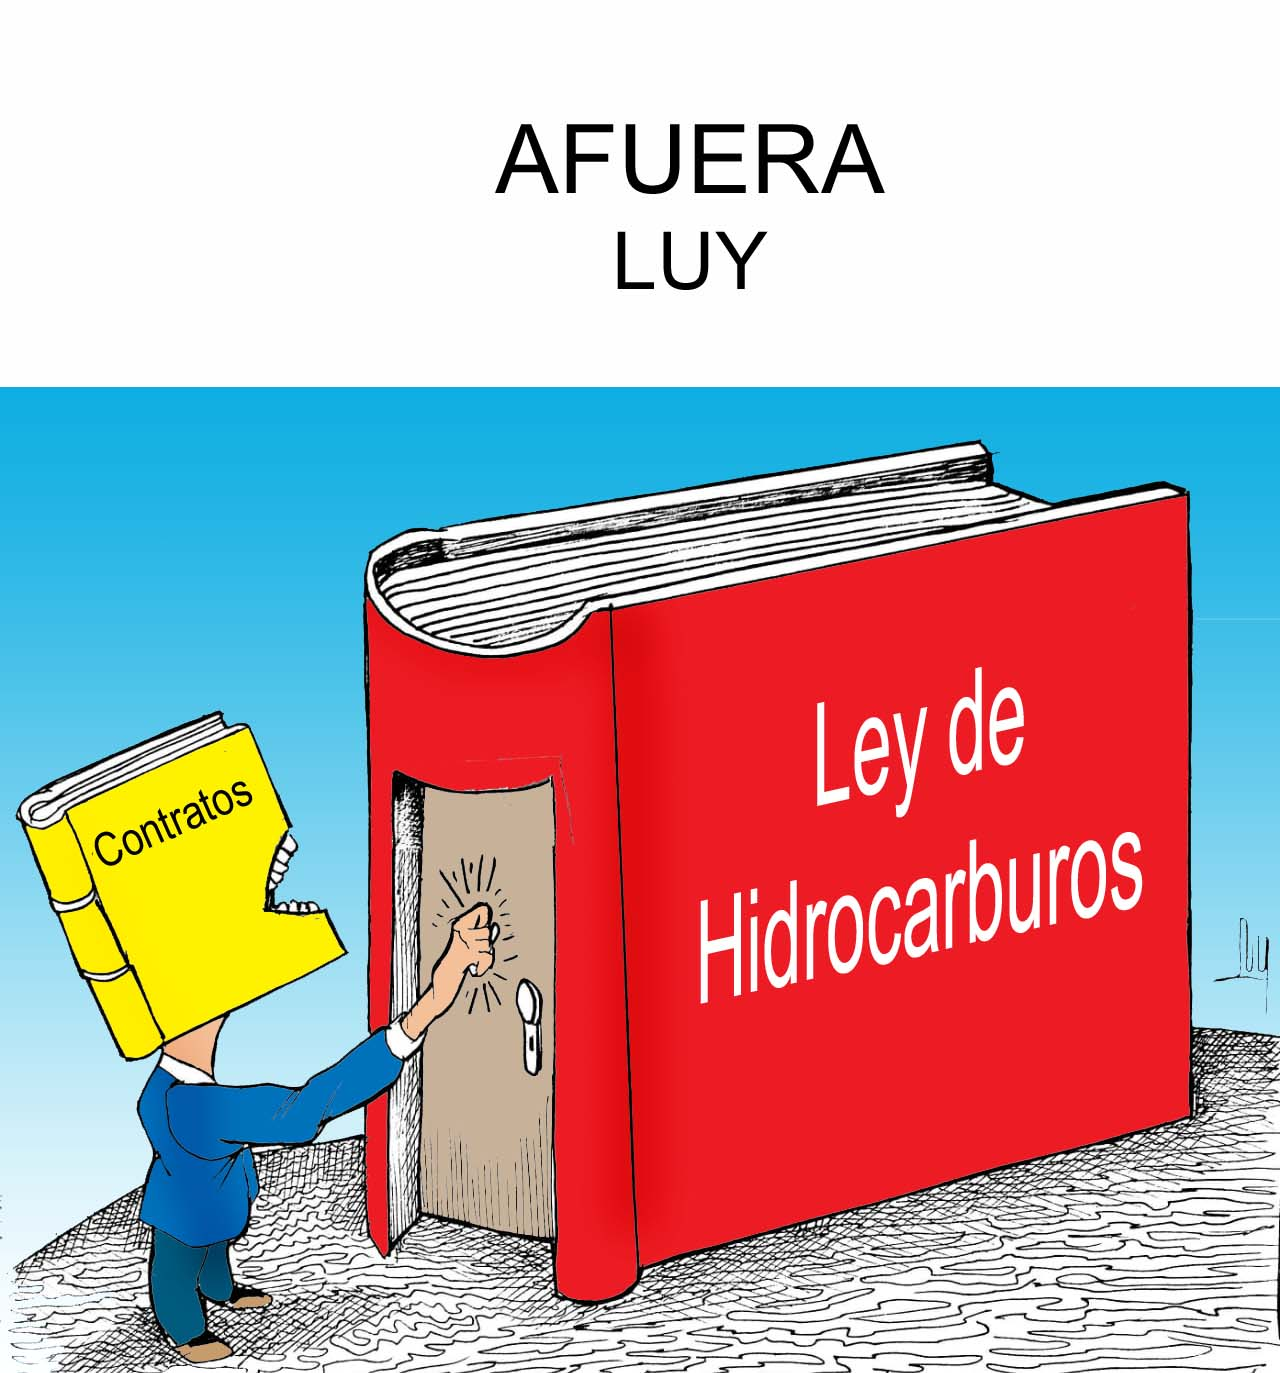 afuera-luy